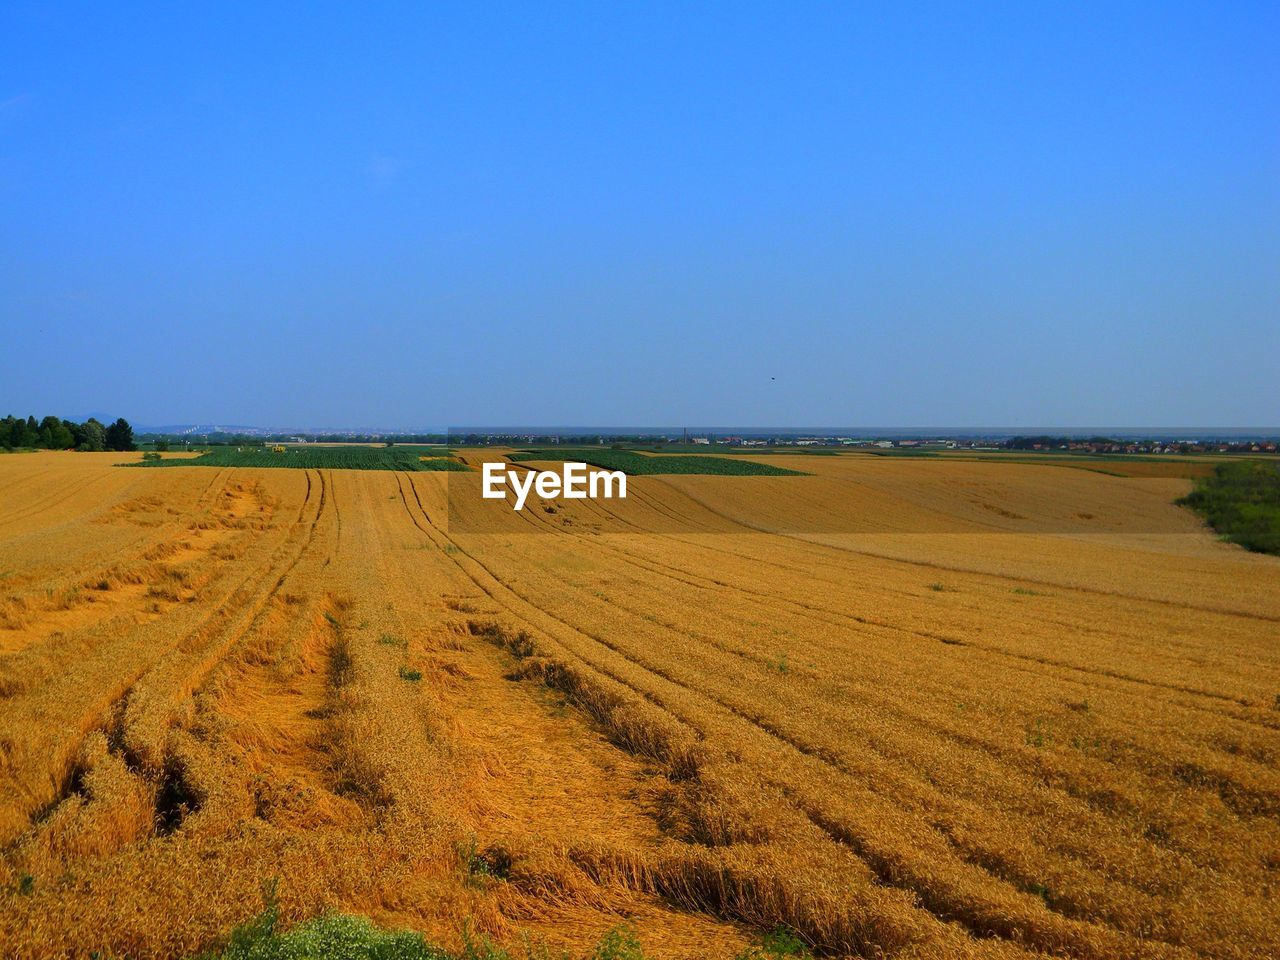 landscape, environment, sky, land, tranquil scene, field, scenics - nature, beauty in nature, tranquility, copy space, nature, no people, blue, plant, day, clear sky, rural scene, agriculture, horizon over land, non-urban scene, outdoors